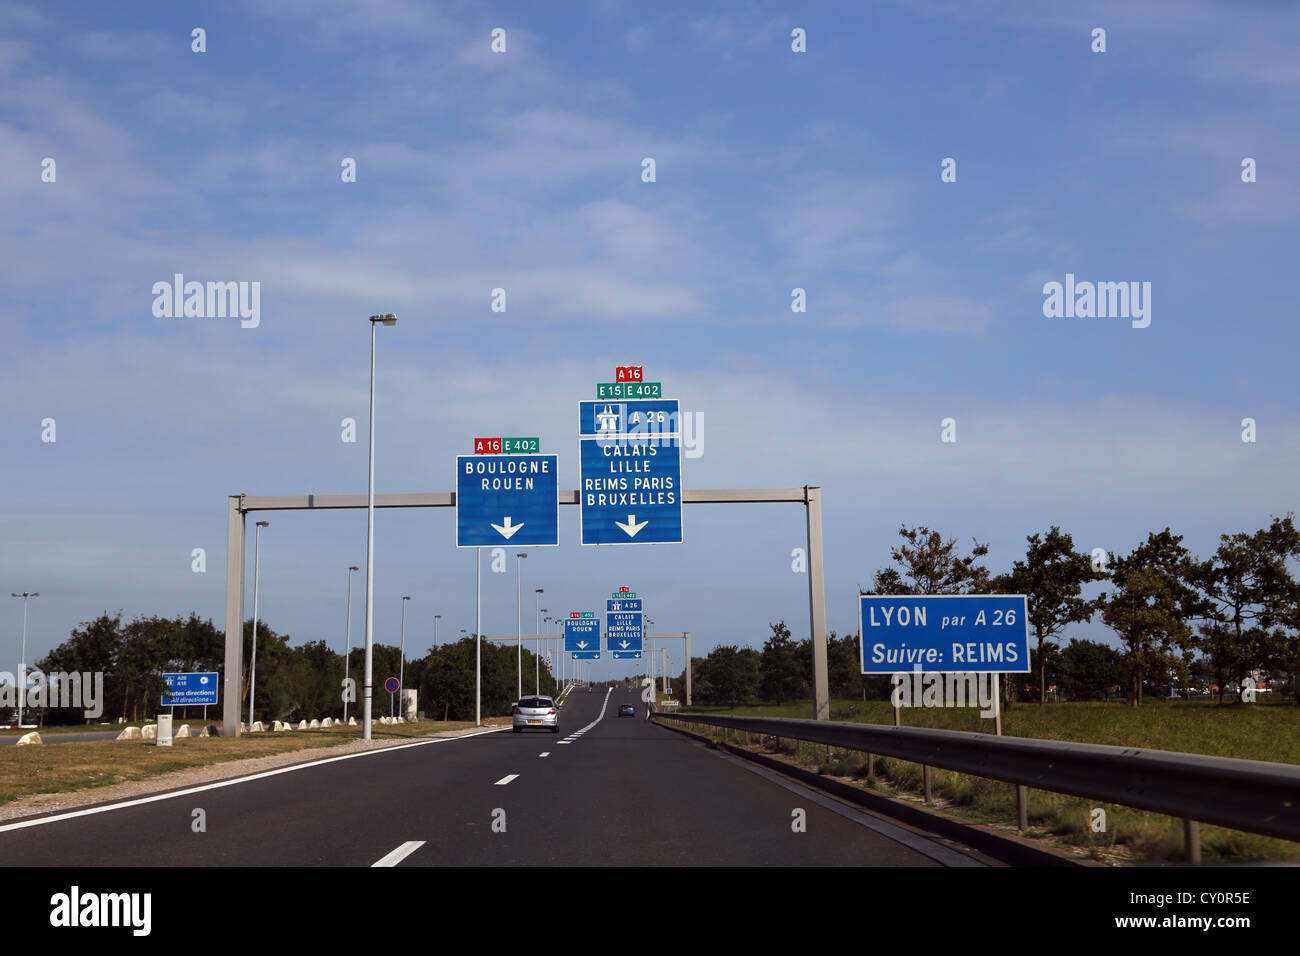 france motorway signs stock photos france motorway signs stock images alamy. Black Bedroom Furniture Sets. Home Design Ideas